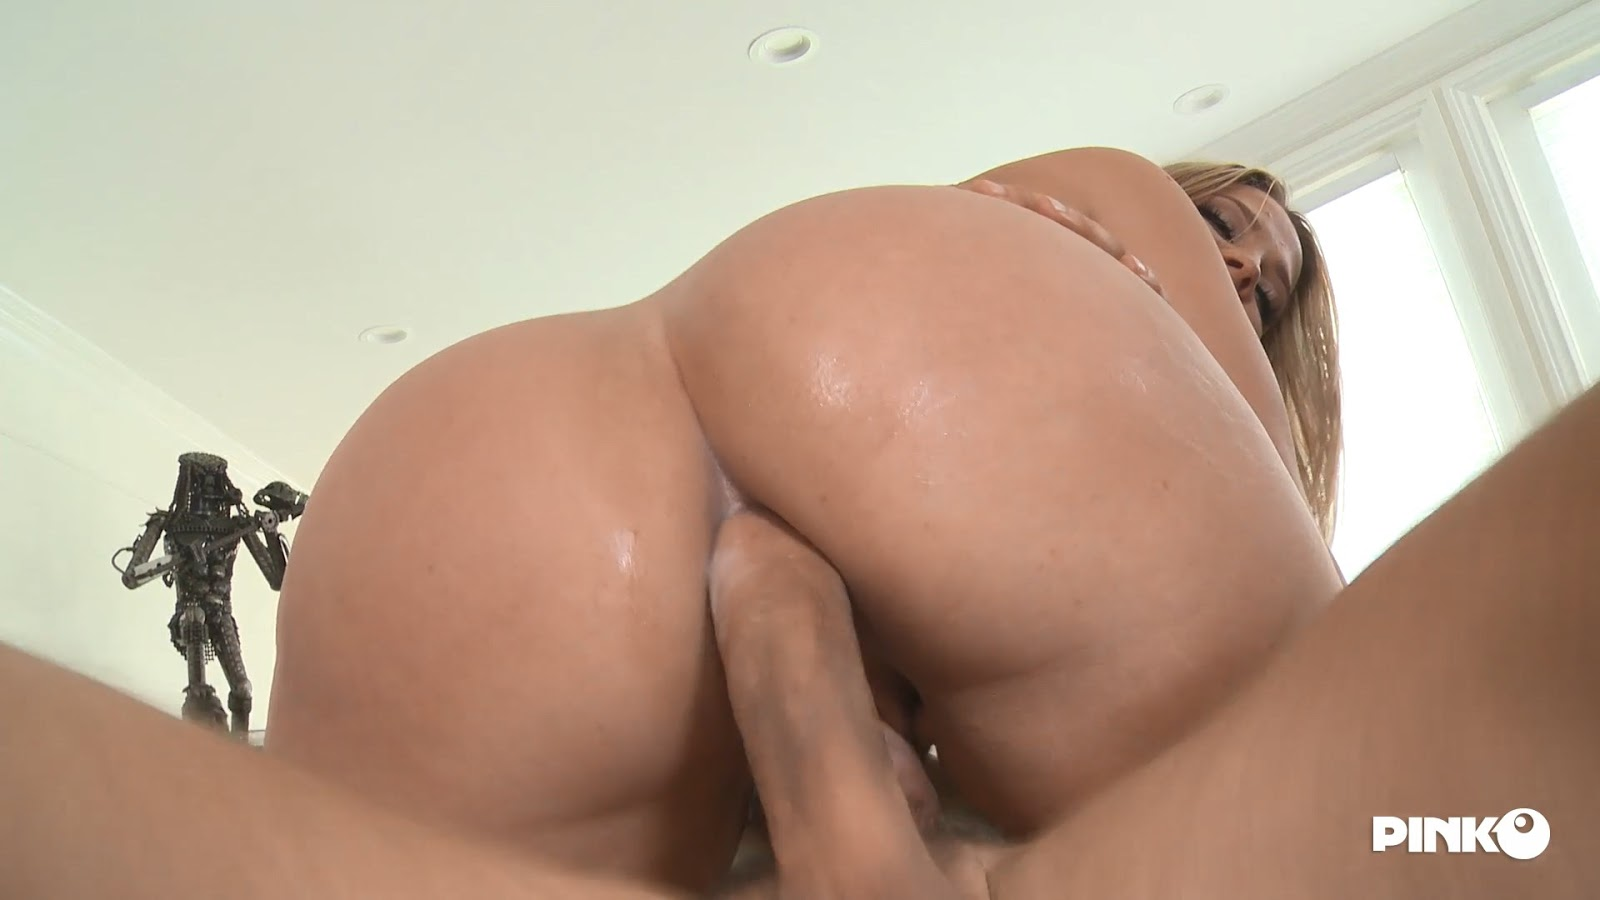 Cute Teen With Perfect Ass Gets Anal Crempie